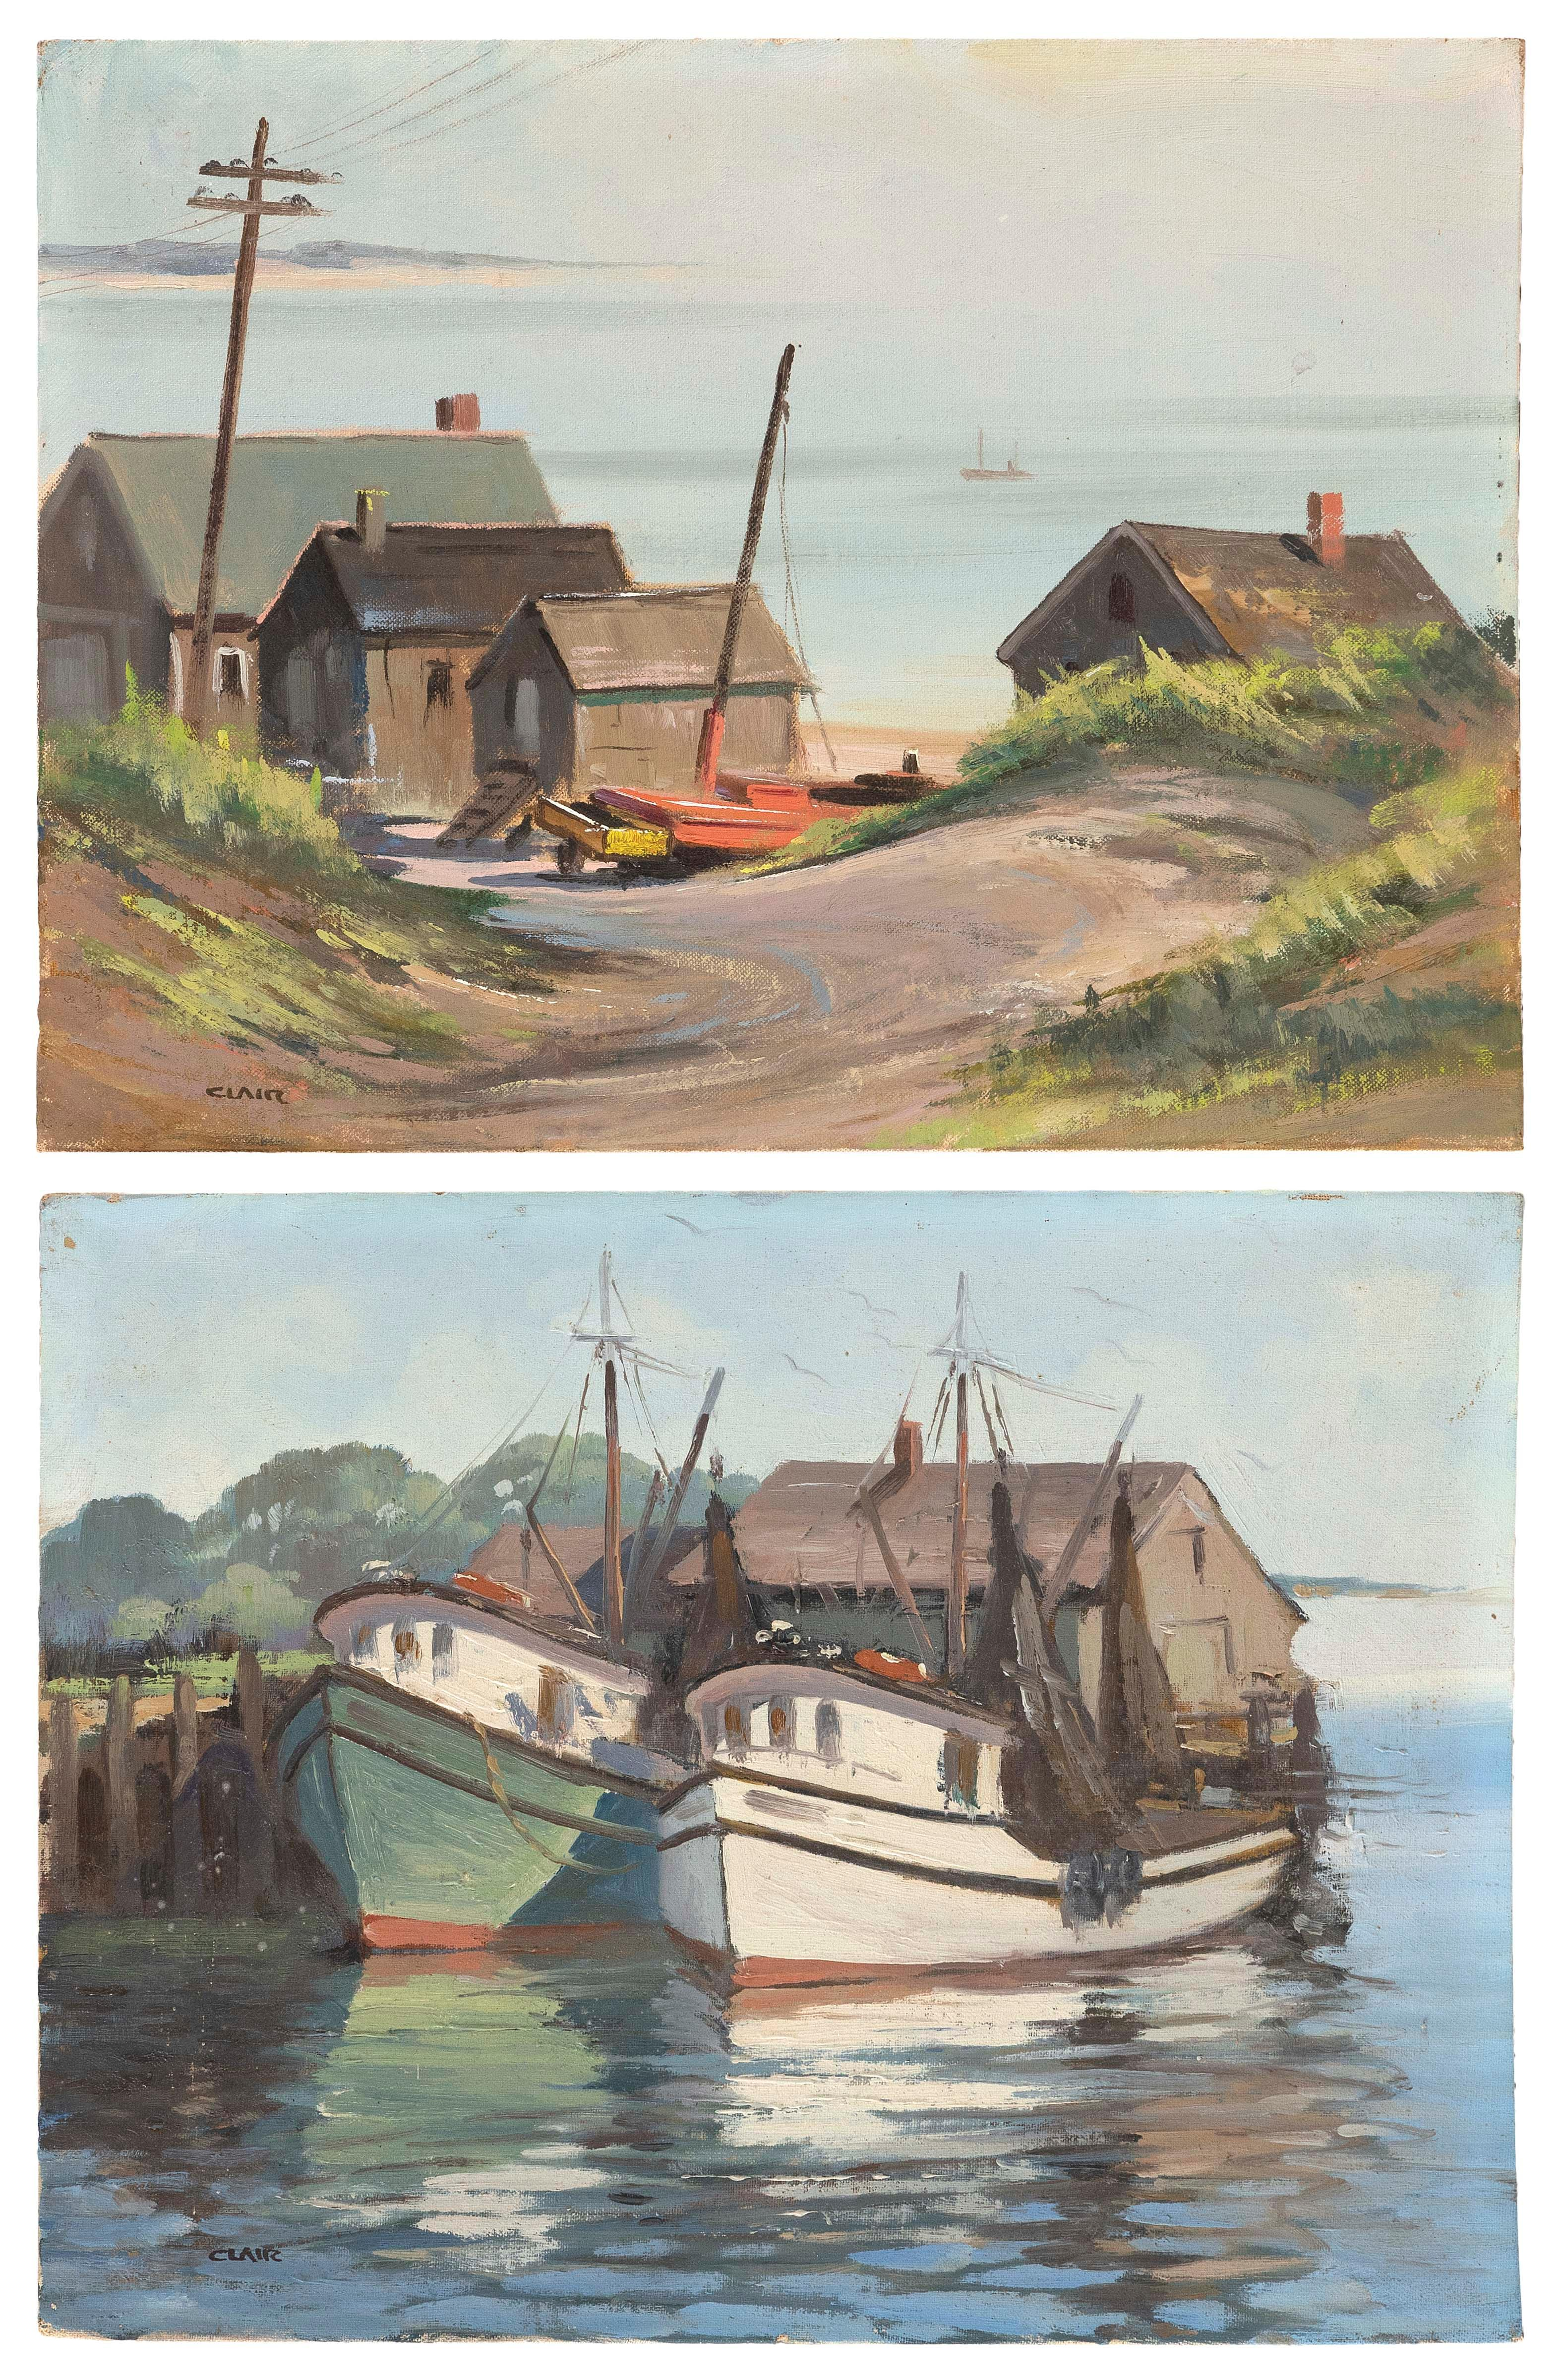 "IRENE STRY (Massachusetts/New York/Hungary, 1904-1963), Two works: Fishing boats at a harbor and seaside houses., Oils on canvas board, 12"" x 16"". Unframed."